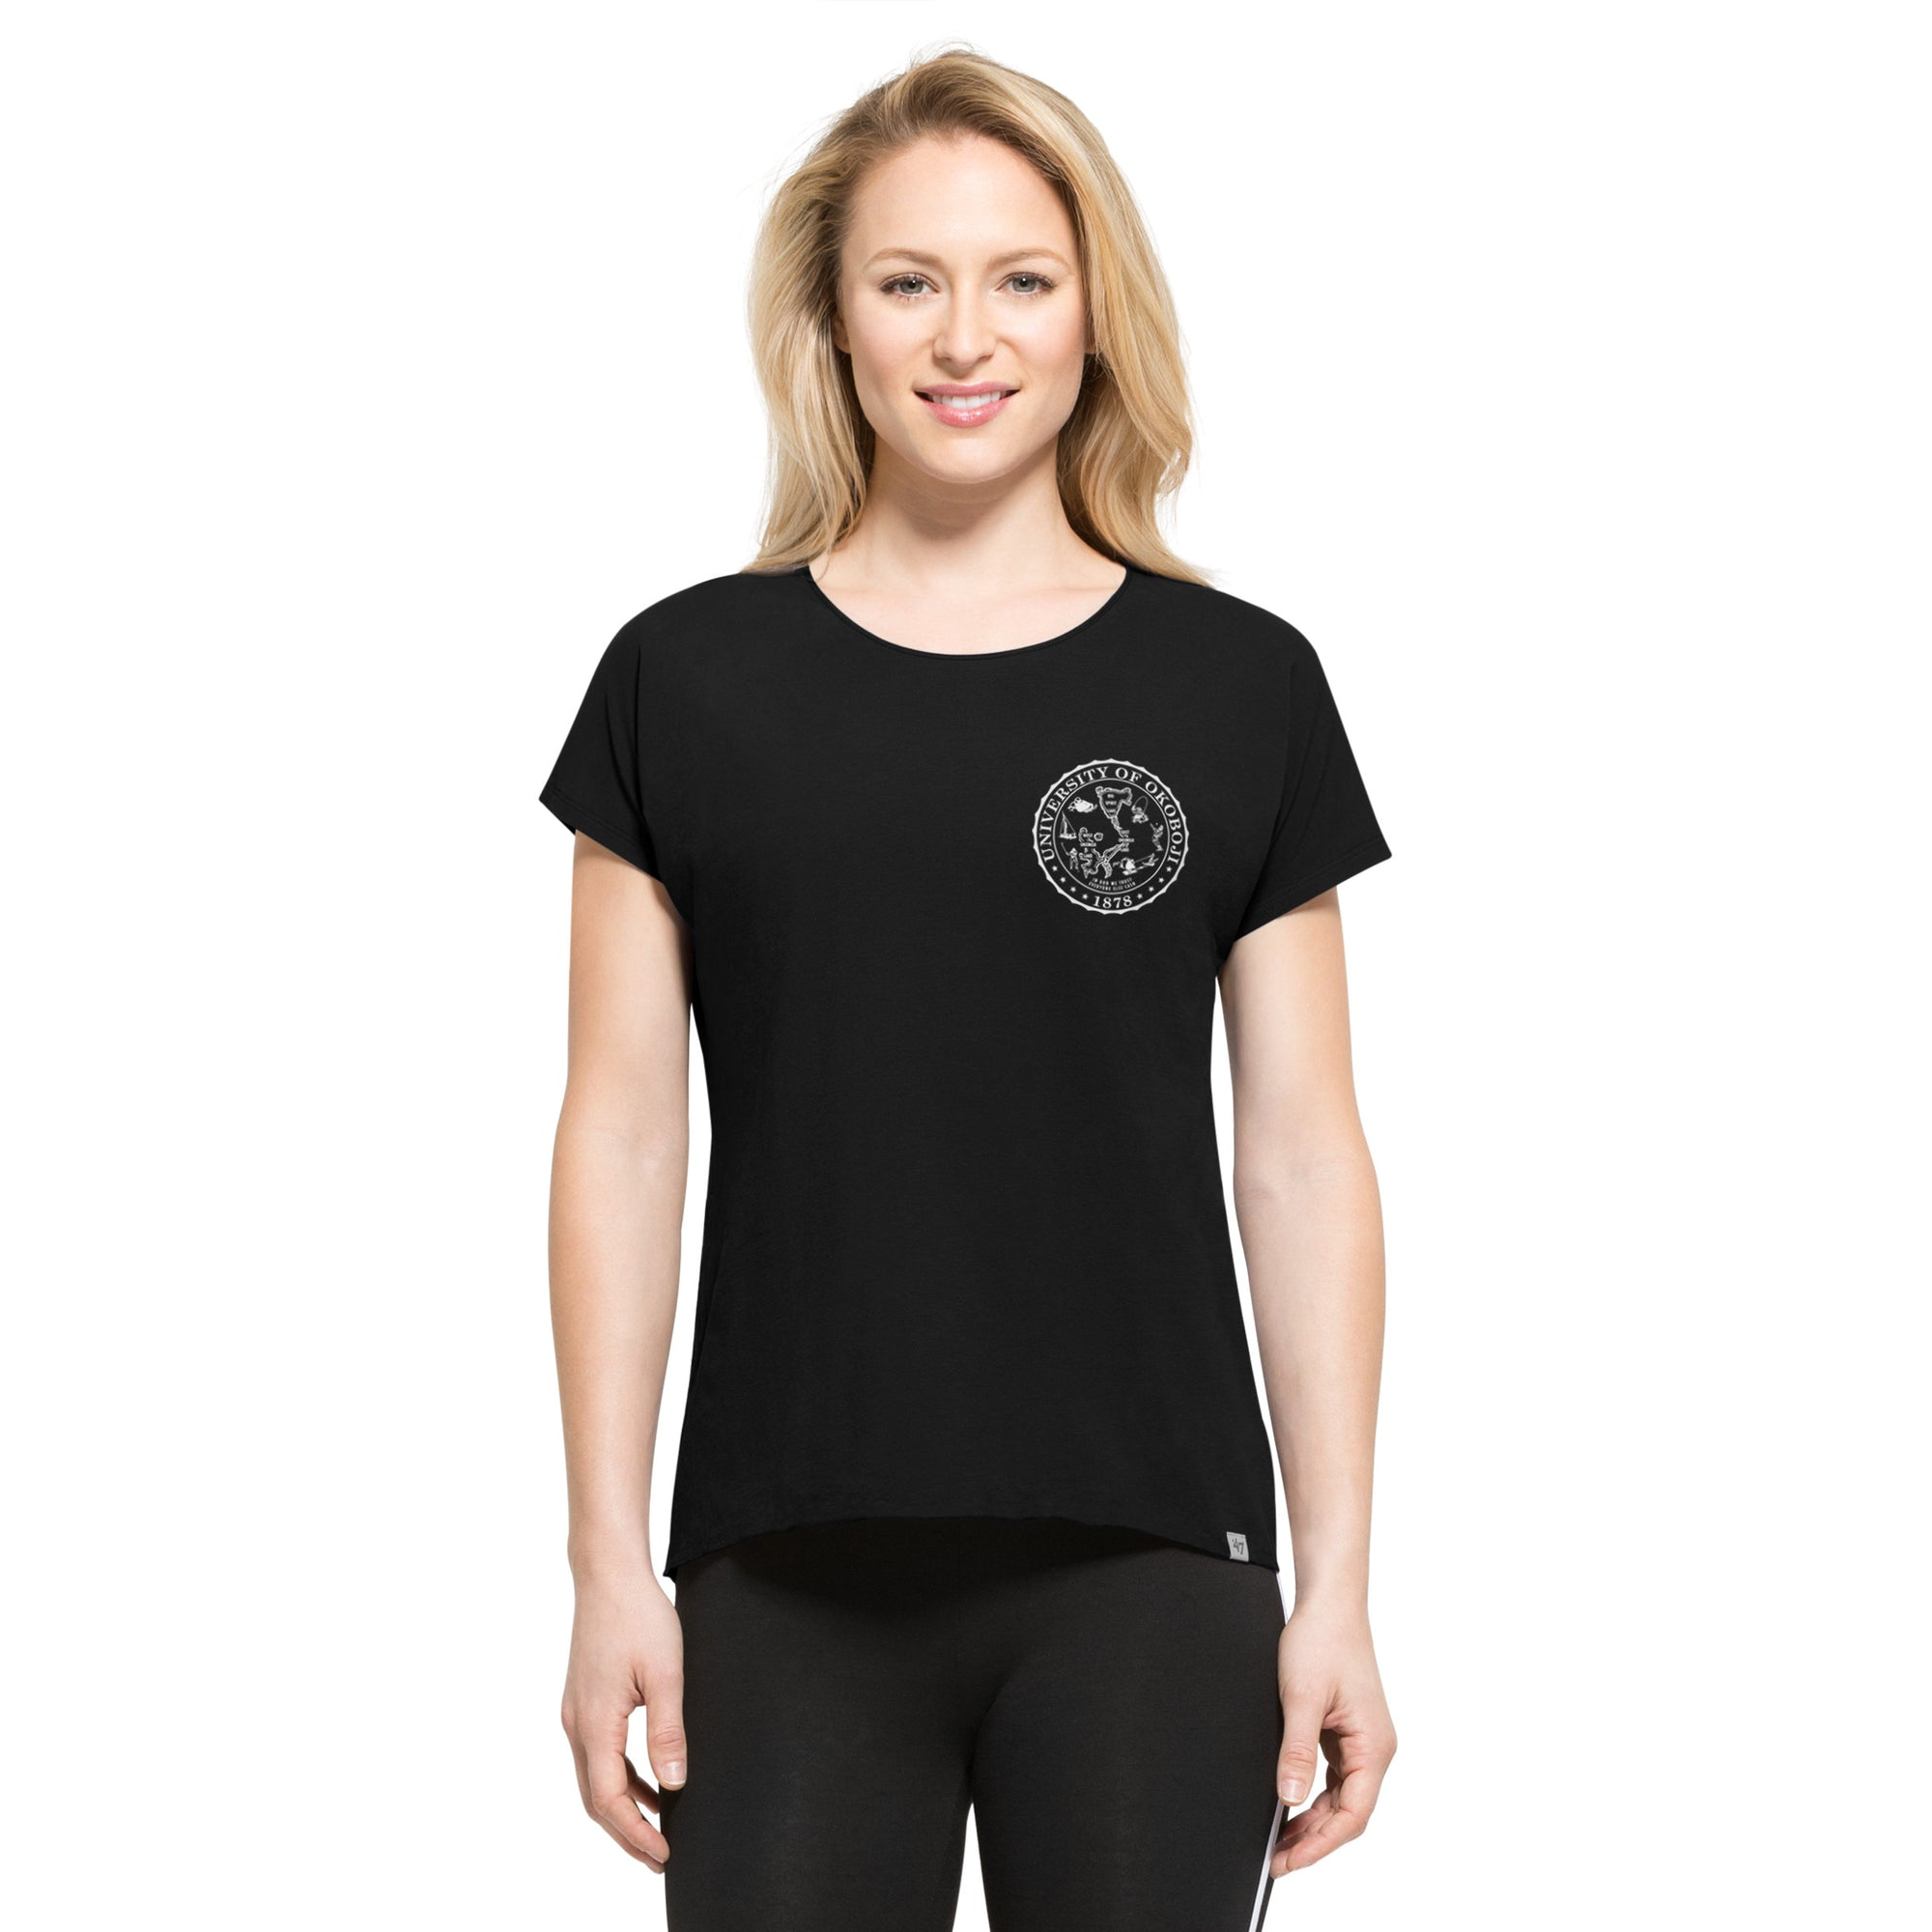 Women's Okoboji Crest Jet Black Forward Lumi Tee